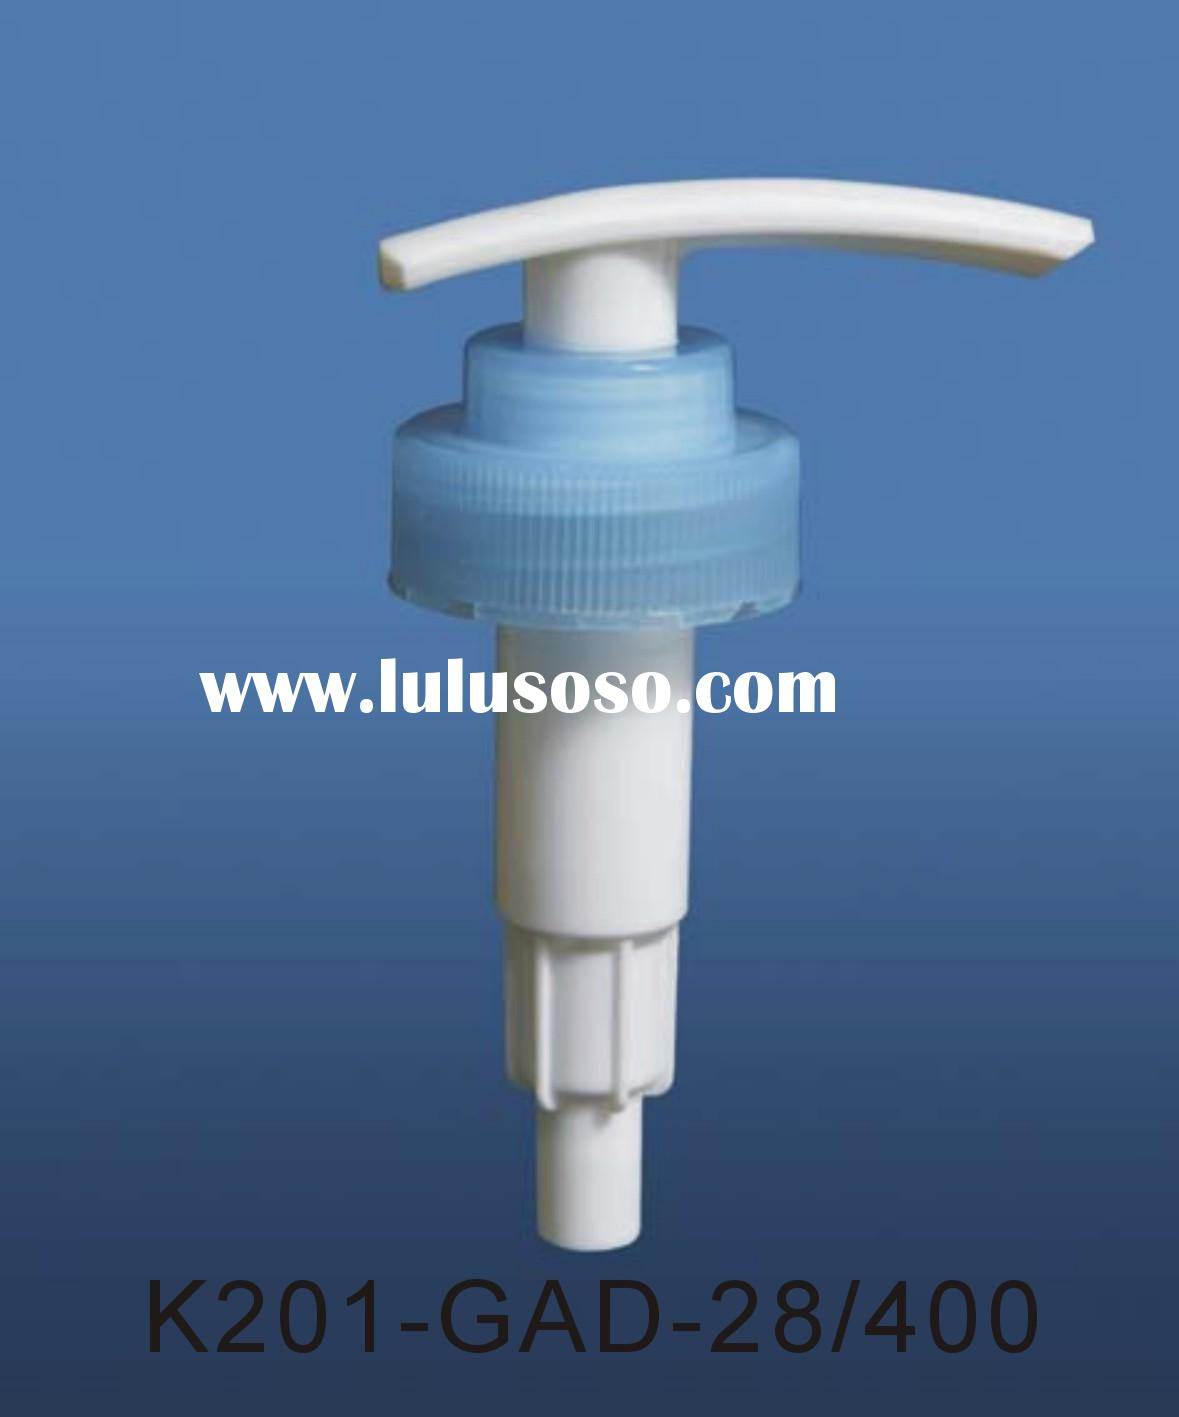 Plastic liquid dispenser